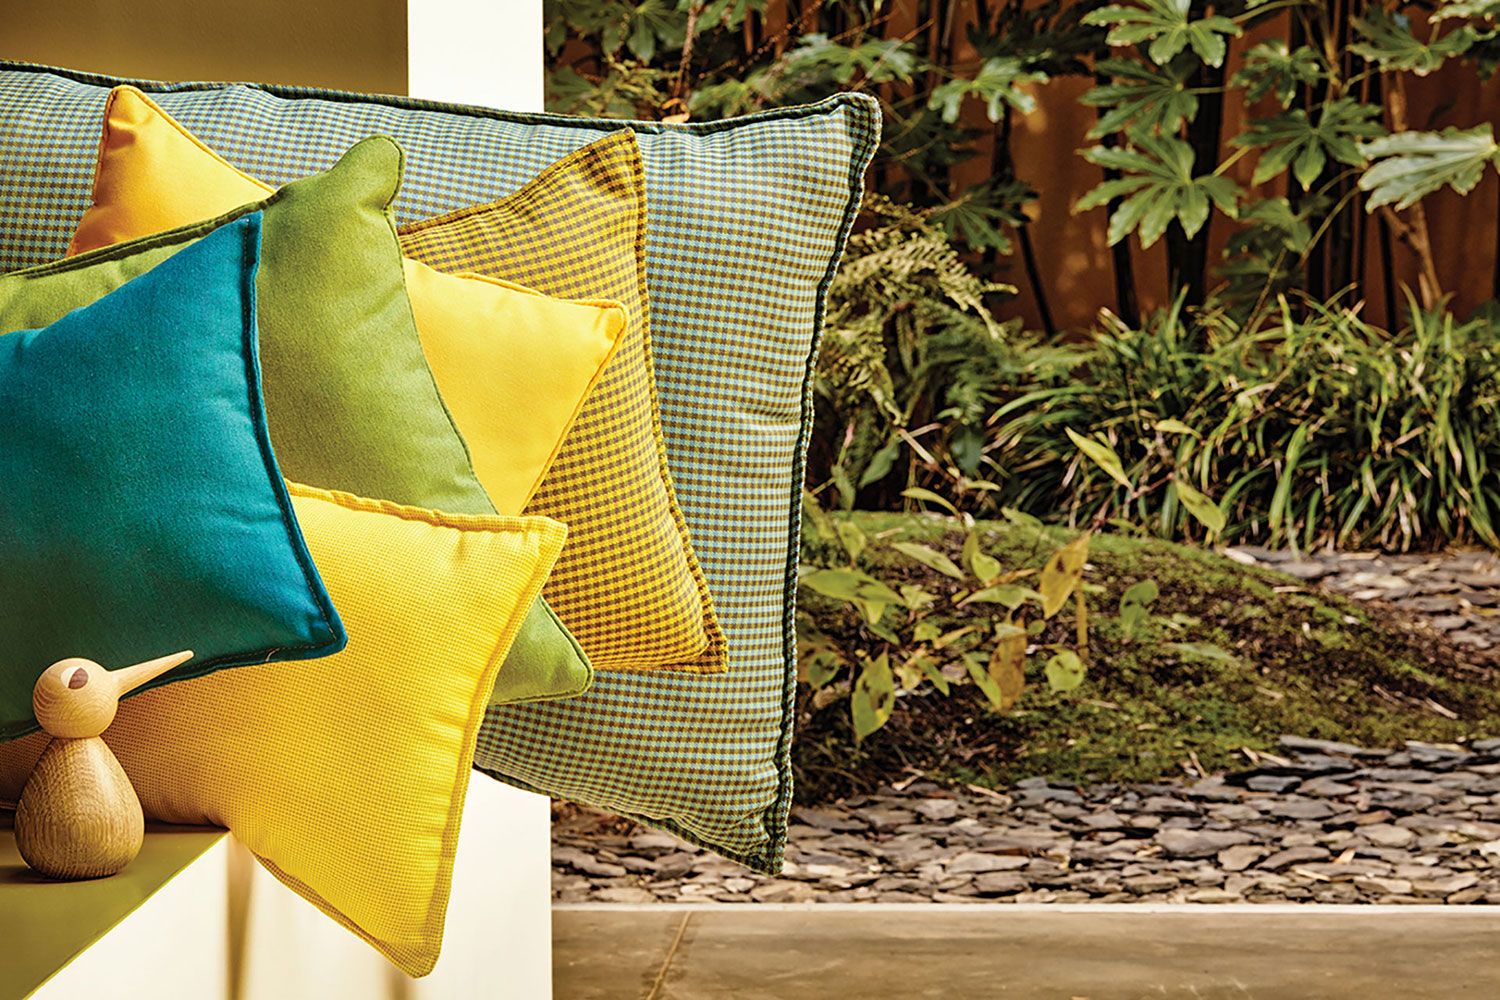 Blue, teal, and yellow pillows made using Sunbrella fabrics.